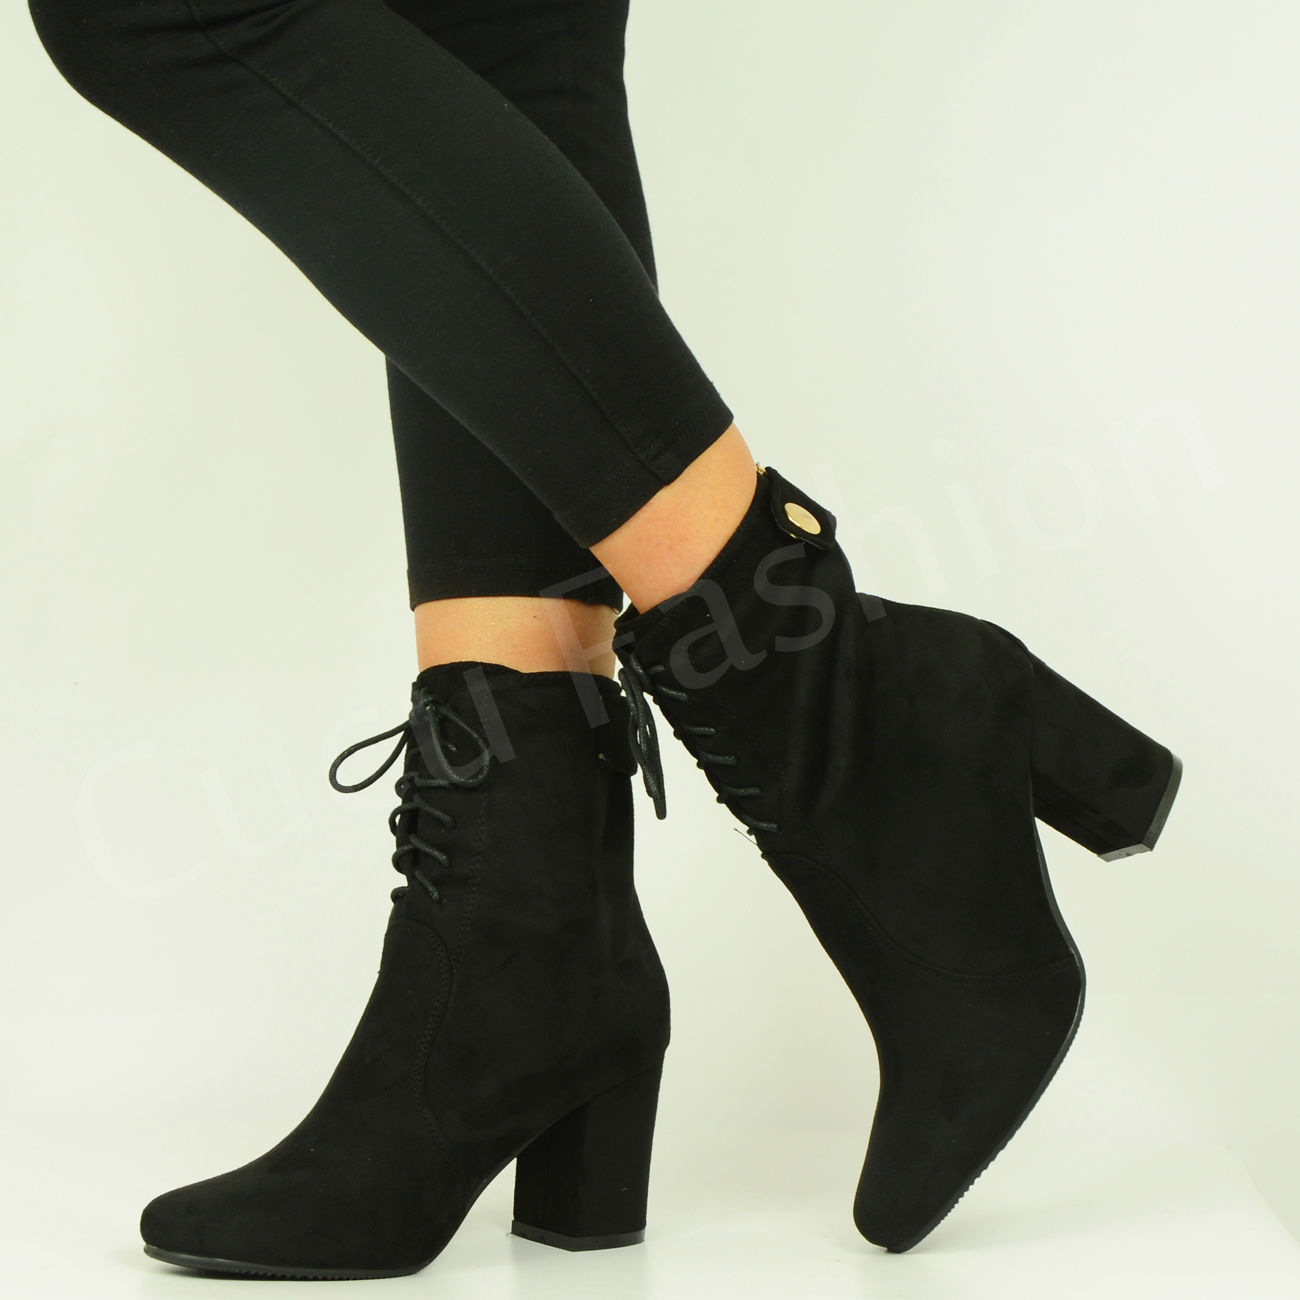 brand new womens ankle boots mid block heel lace up